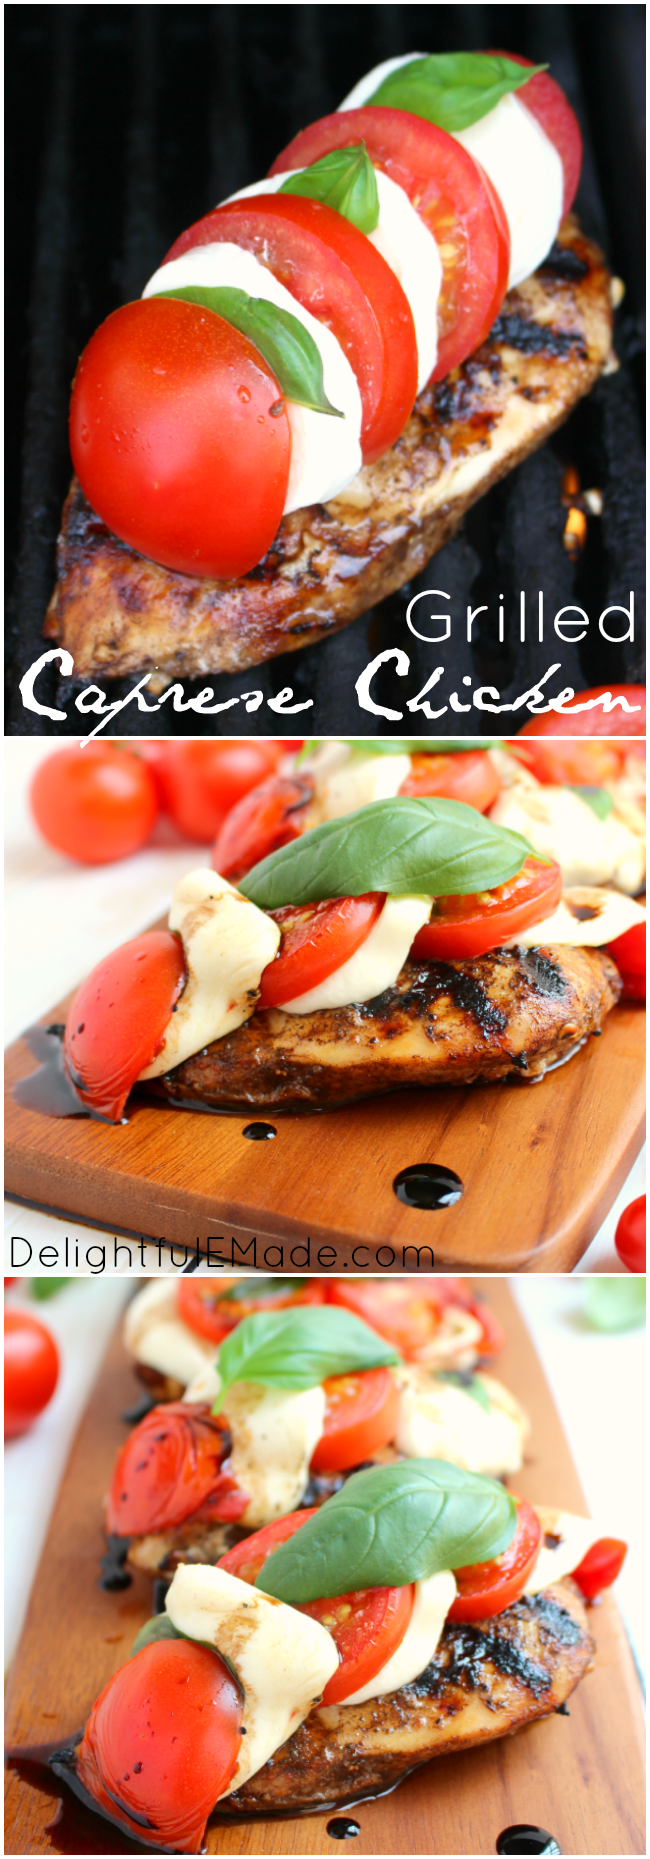 ... balsamic vinaigrette marinated chicken breast, and grilled to